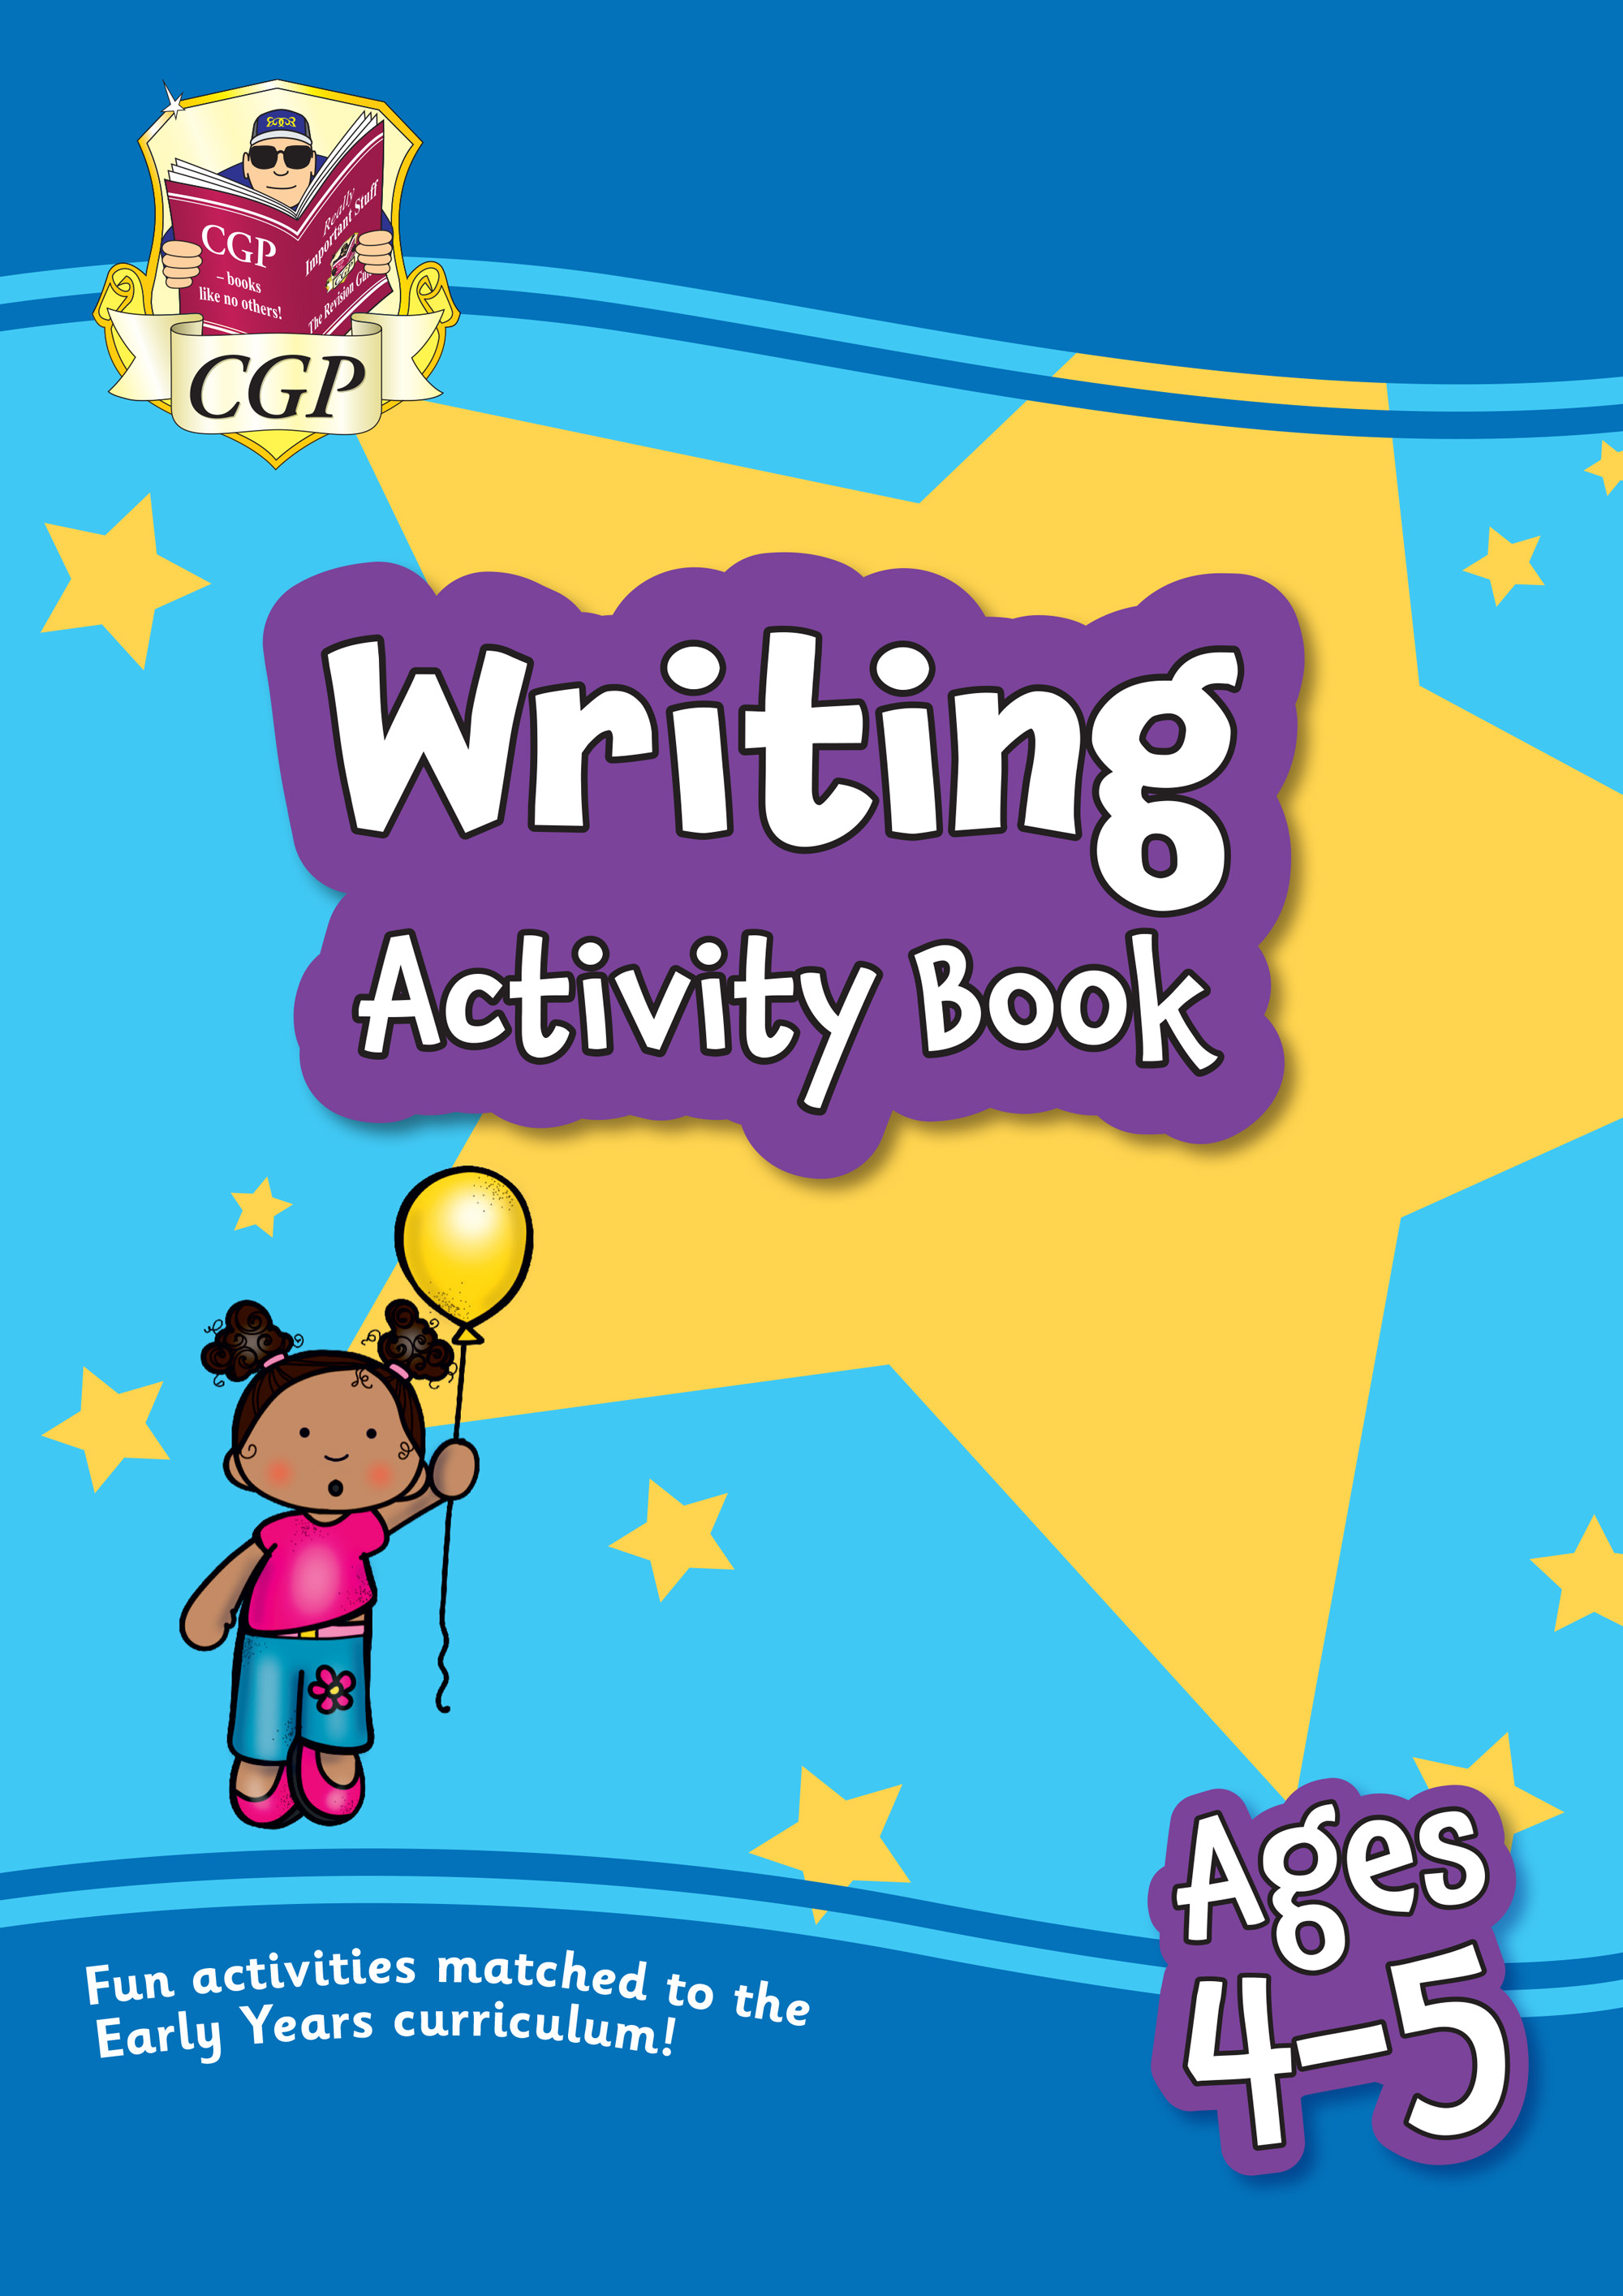 EPFRH01 - New Writing Activity Book for Ages 4-5: perfect for home learning